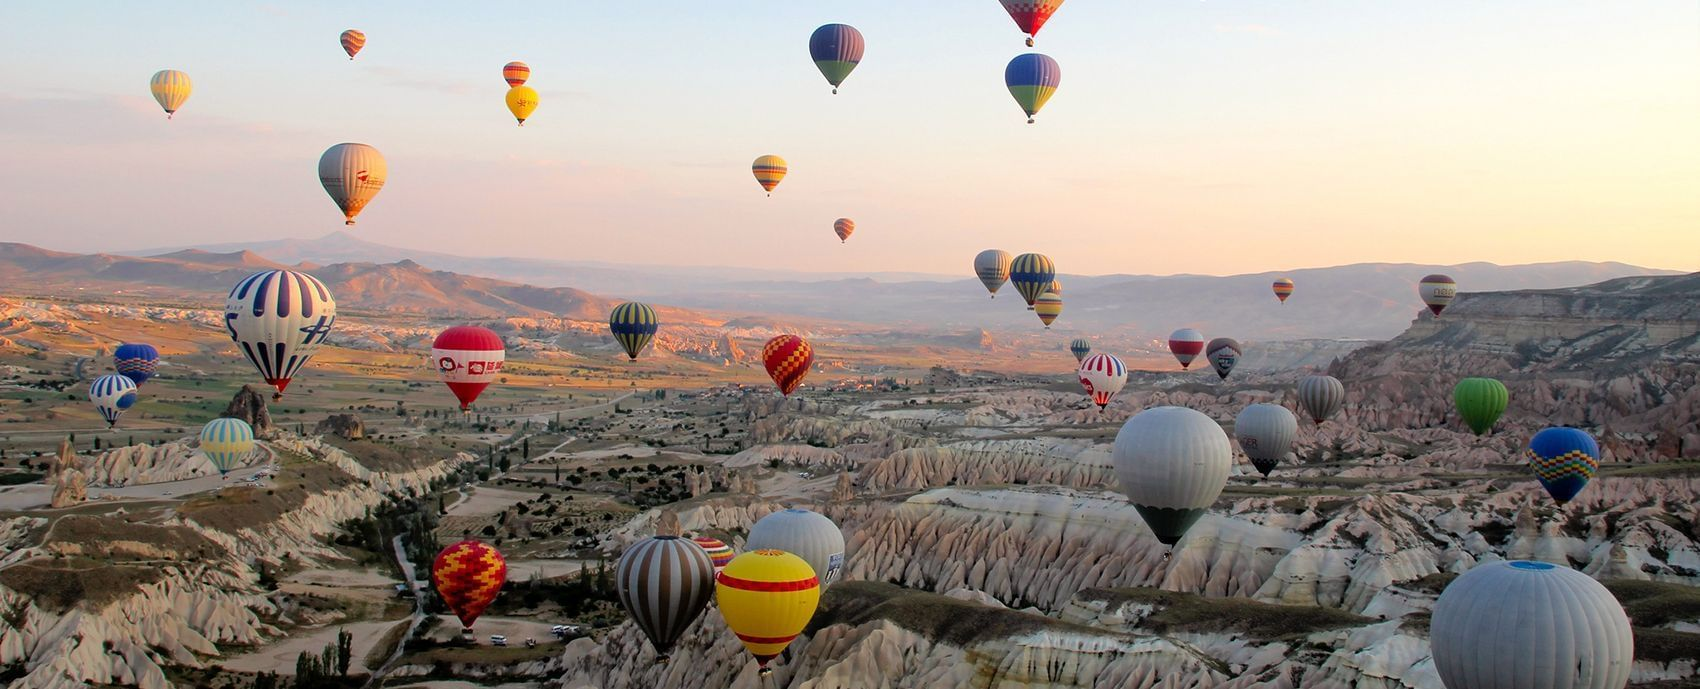 Ballon flight in Cappadocia: A unique and authentic experience